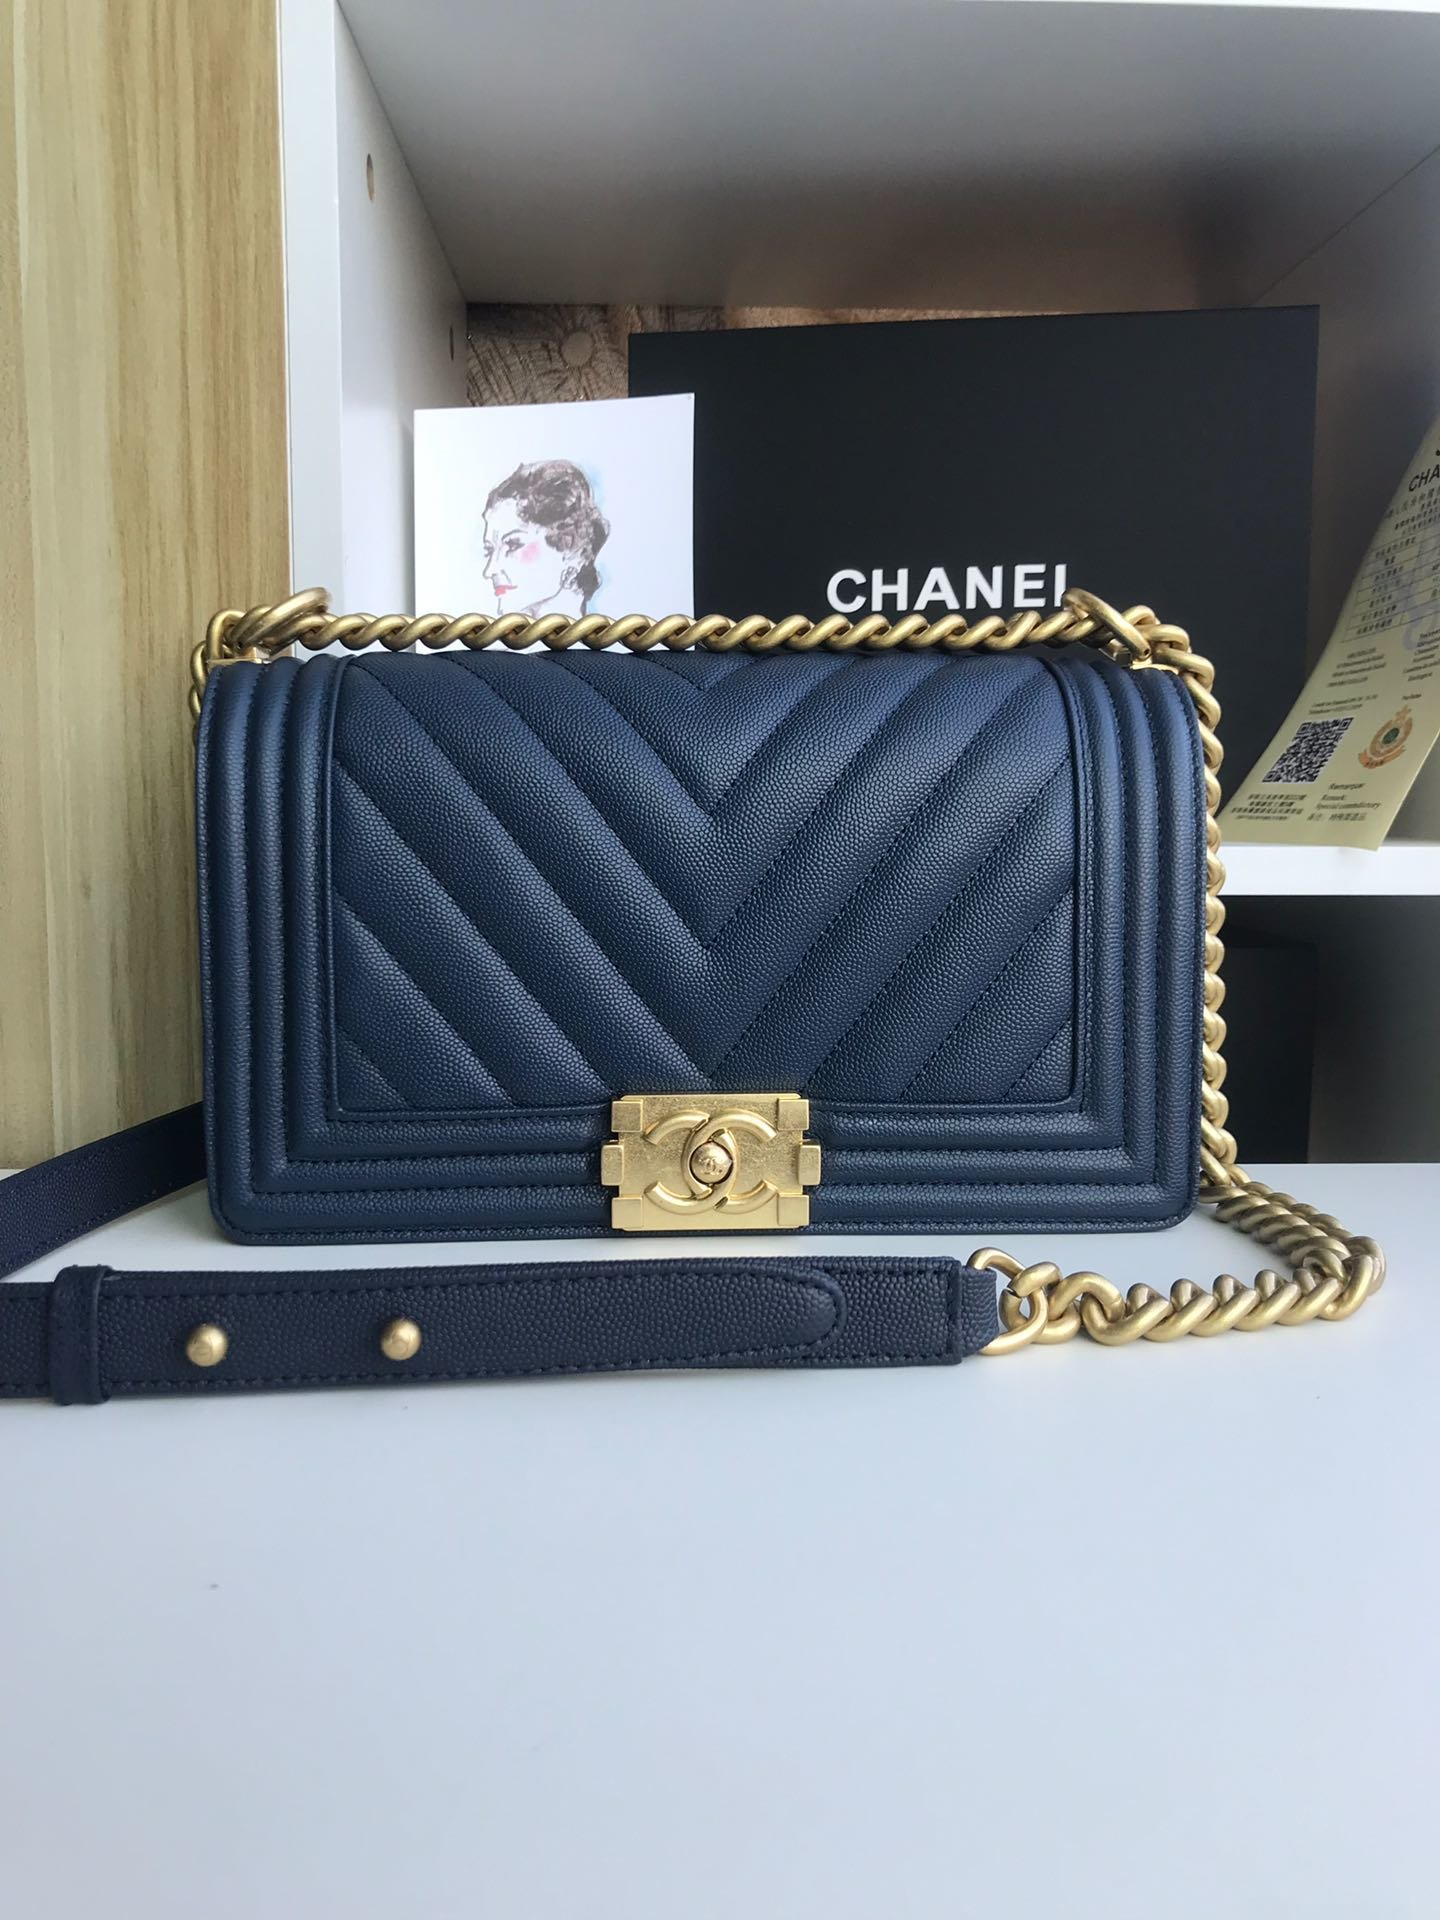 Replica 25cm V Boy Chanel Handbag Navy Blue Grained Calfskin Gold Tone Metal